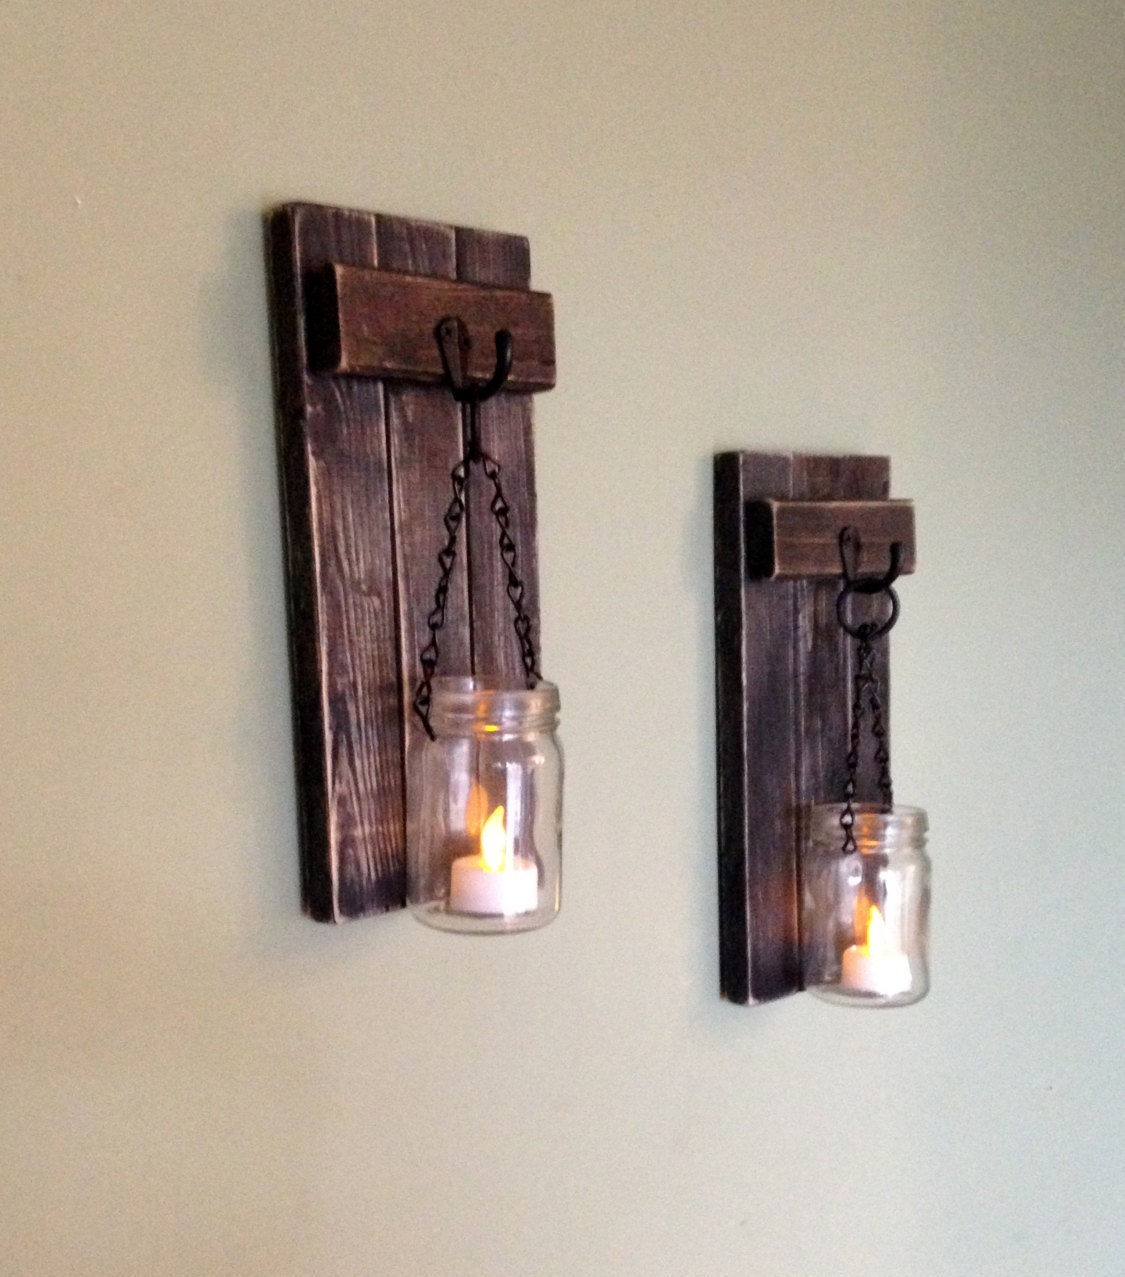 Candle Wall Sconces Rustic : Rustic Wall Decor Wall Sconce Wooden Sconce Wooden Candle